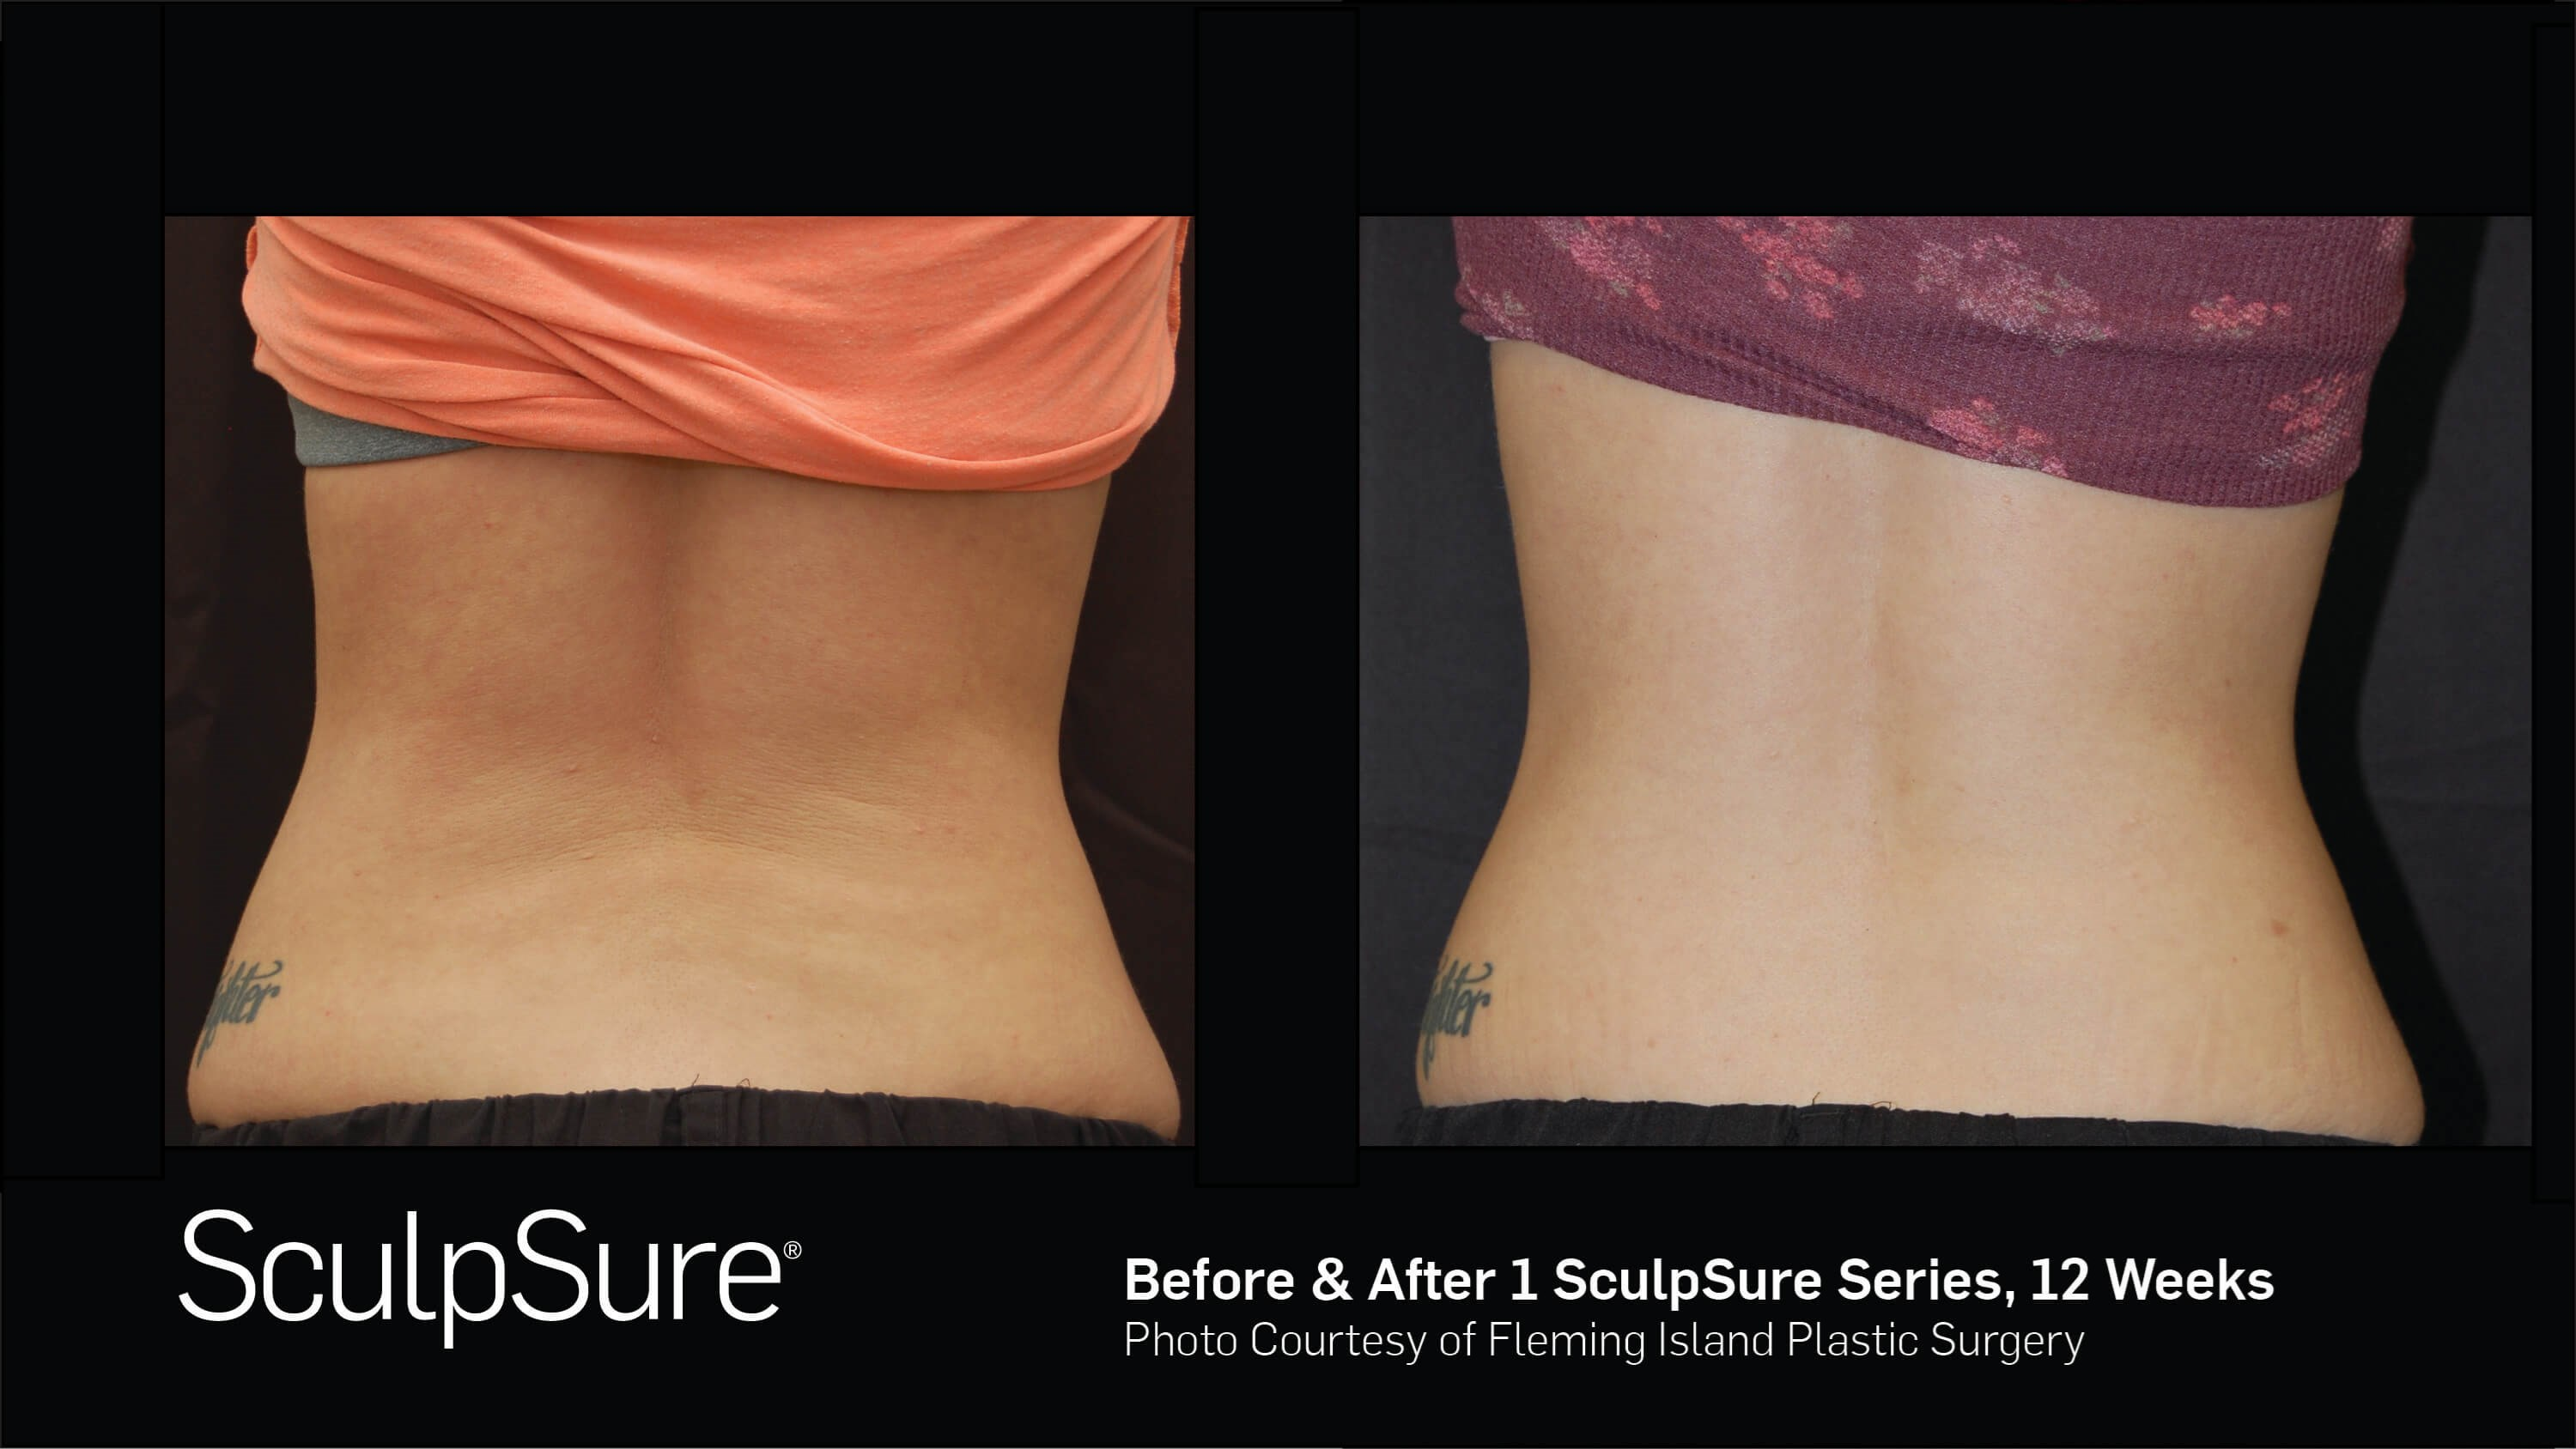 Before & After SculpSure Posterior View SculpSure